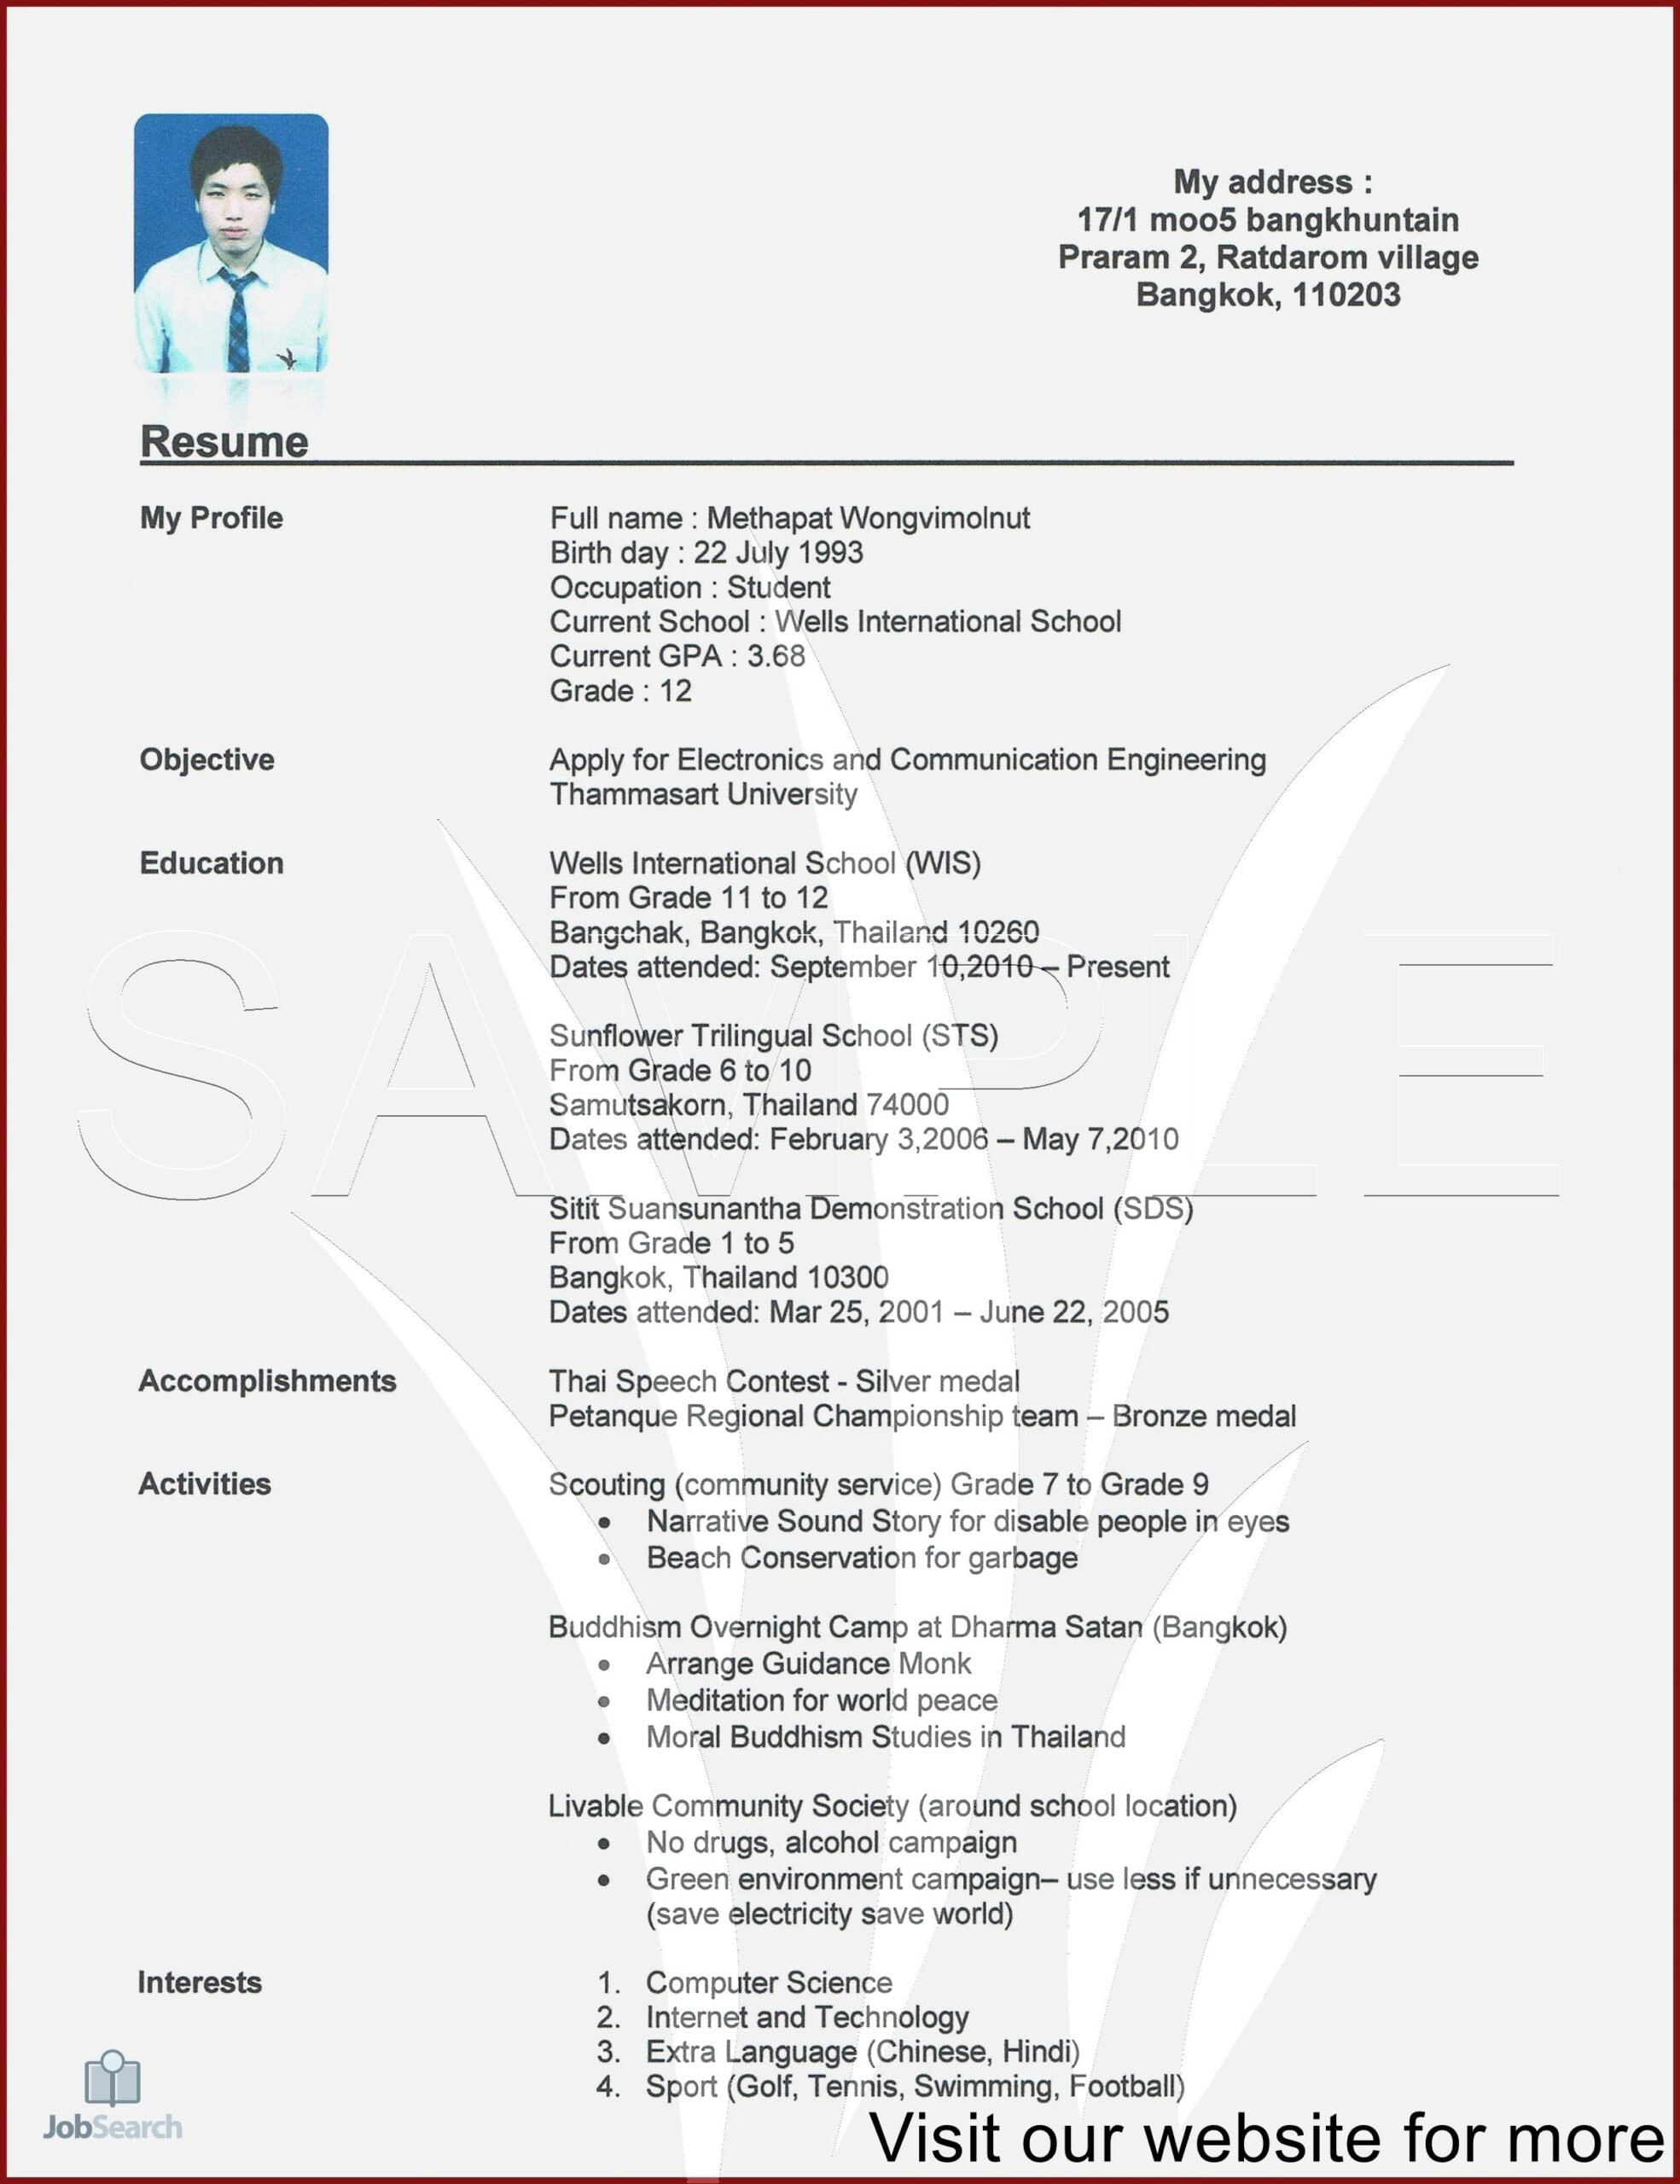 resume examples layout best design template cv professional creative make and save for Resume Make And Save Resume For Free